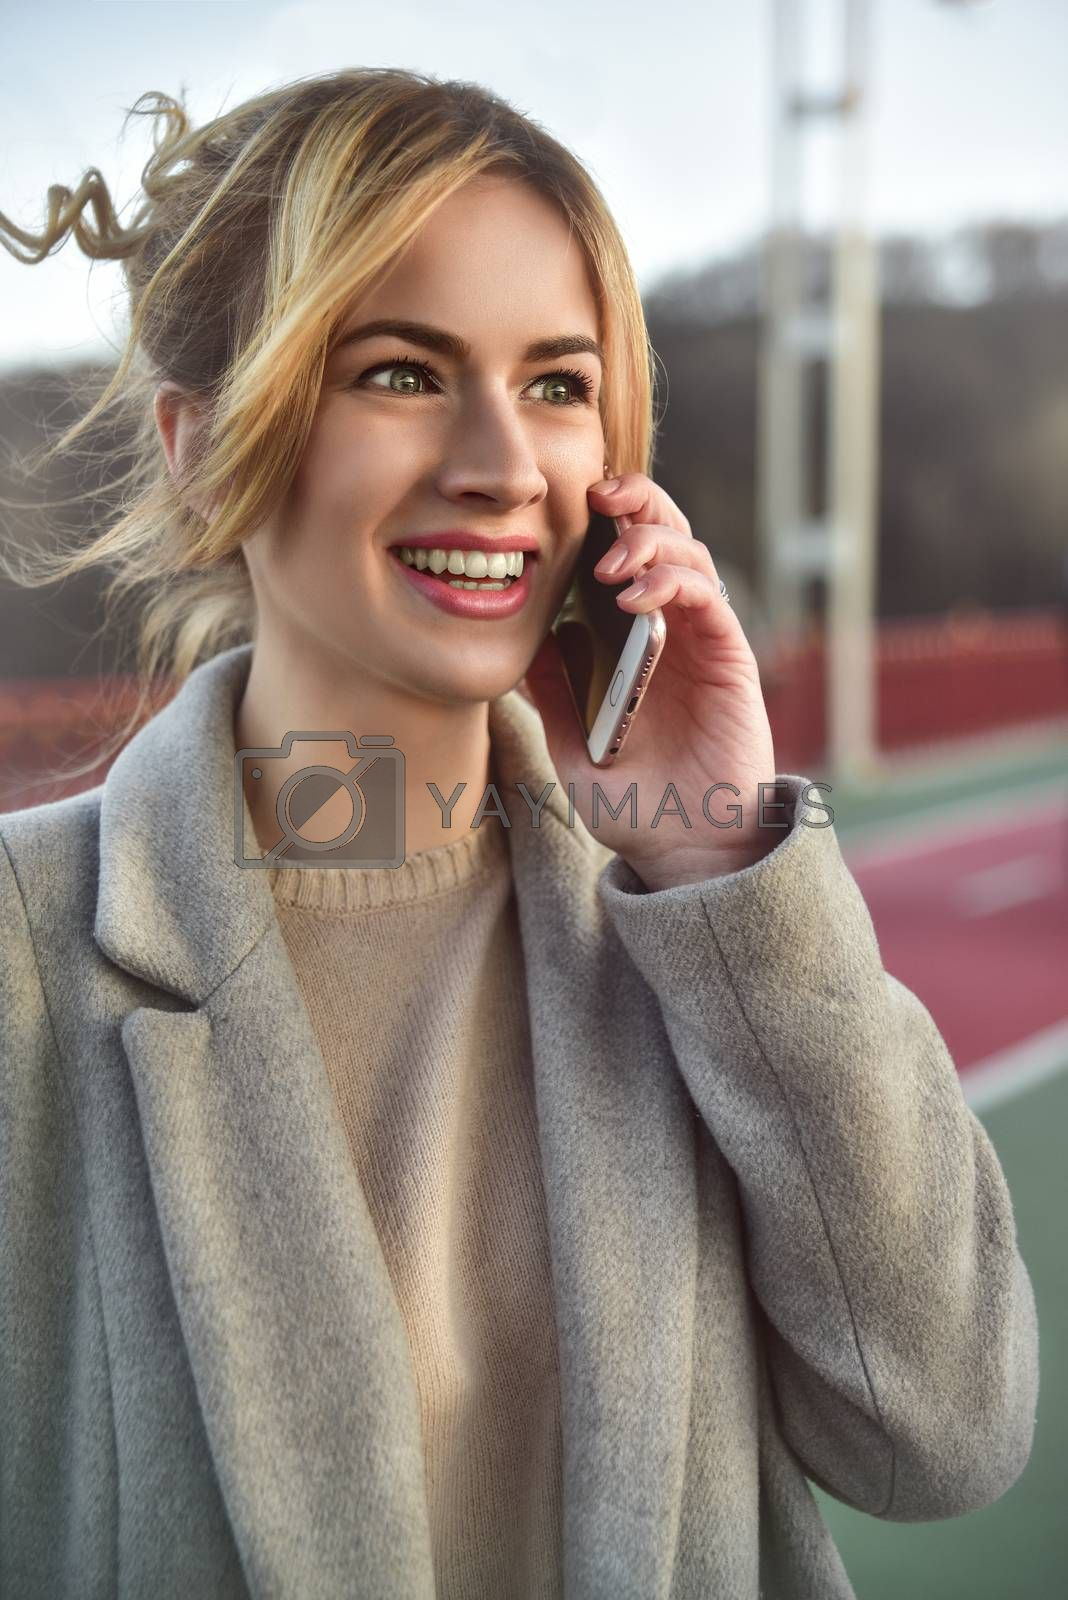 Cute smiling young woman talking on phone standing on the bride. Close up portrait